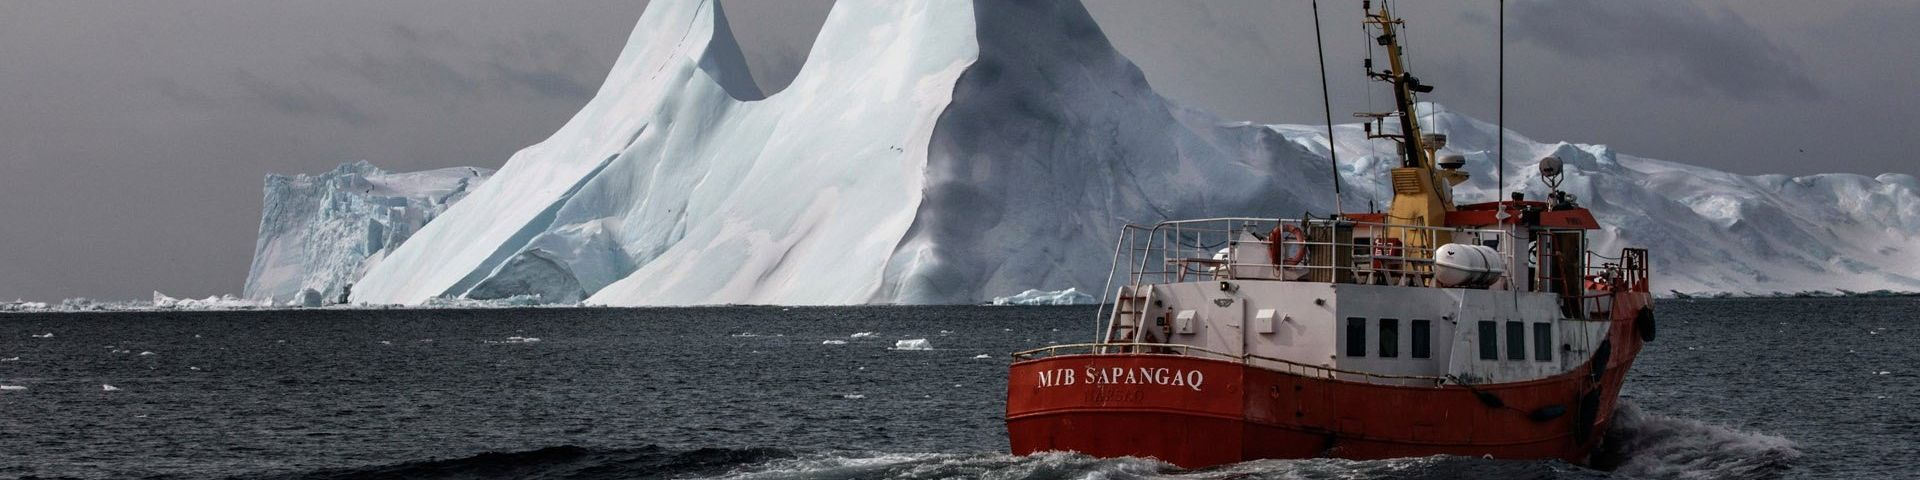 A red boat sails on cold grey water, with a huge floating iceberg behind it.